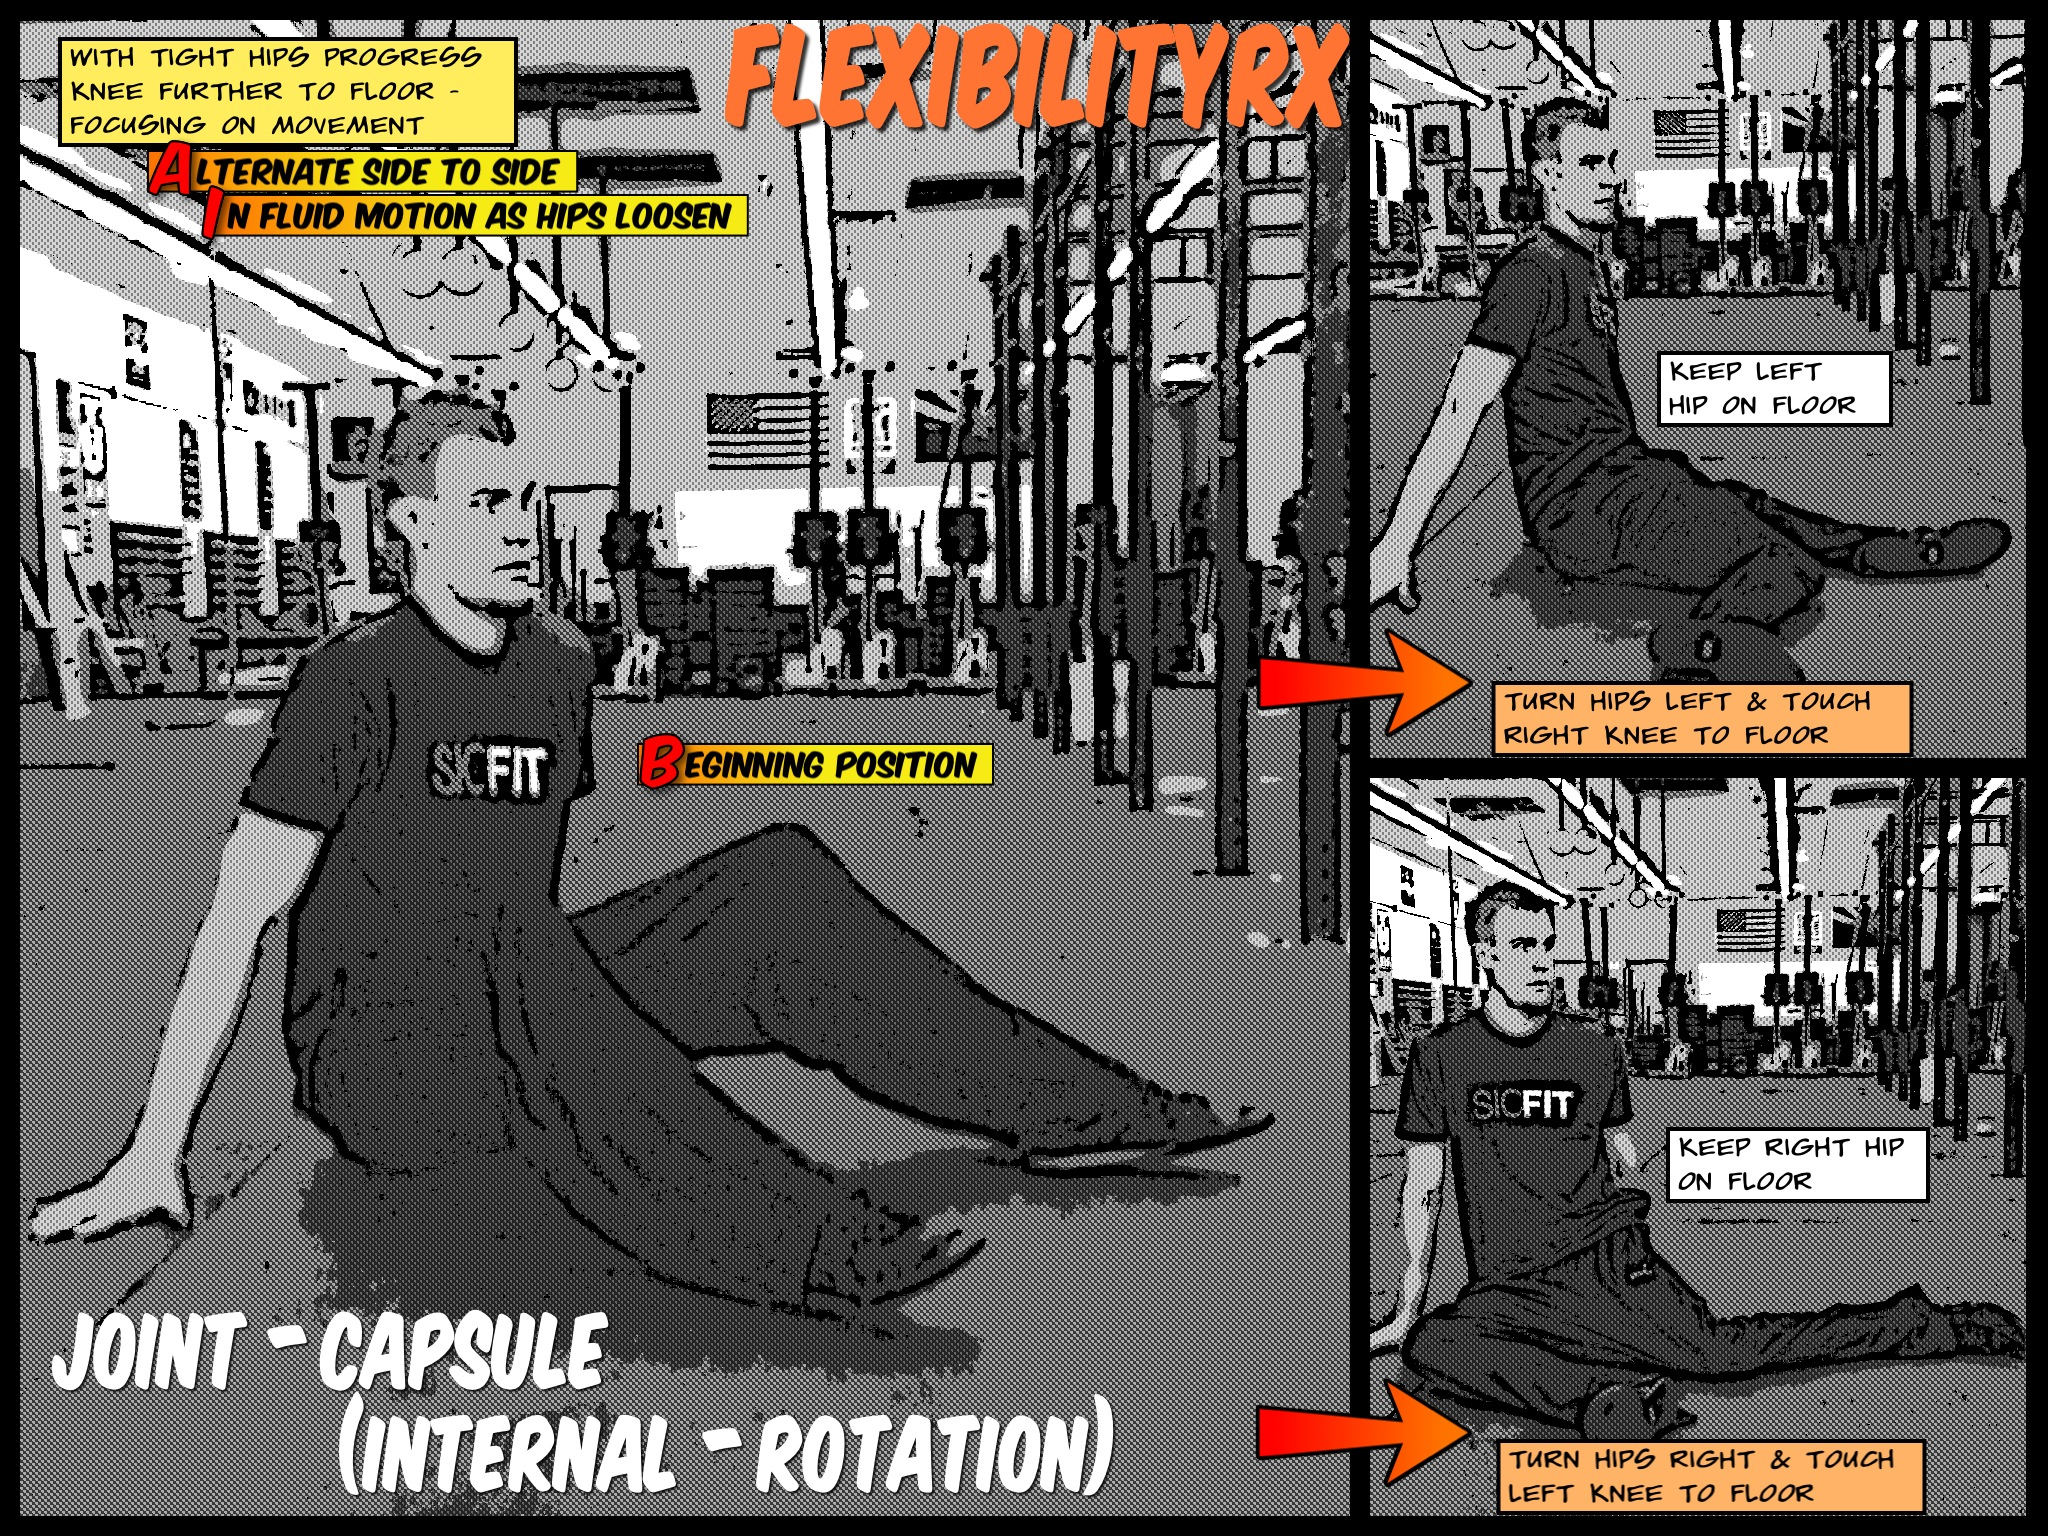 Squatrx - Internal-rotation Stretch For Deeper Squat Depth